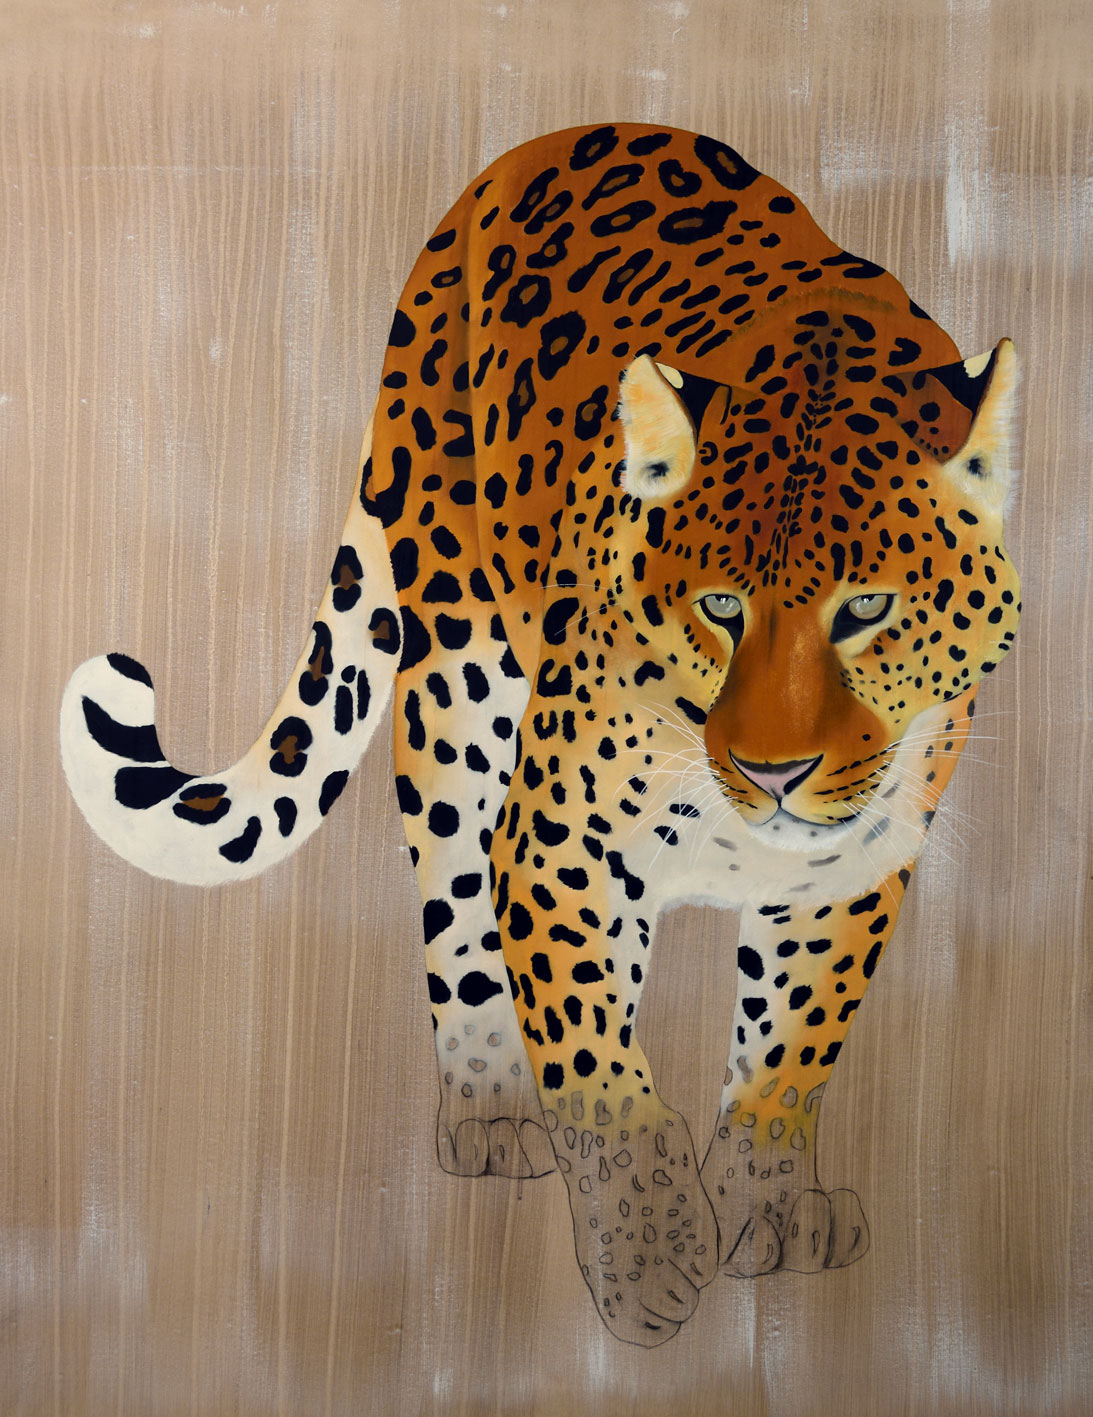 PANTHERA PARDUS ORIENTALIS panthera-pardus-orientalis-amur-leaopard-far-eastern-leopard-delete-threatened-thierry-bisch-endangered-extinction Thierry Bisch painter animals painting art decoration hotel design interior luxury nature biodiversity conservation